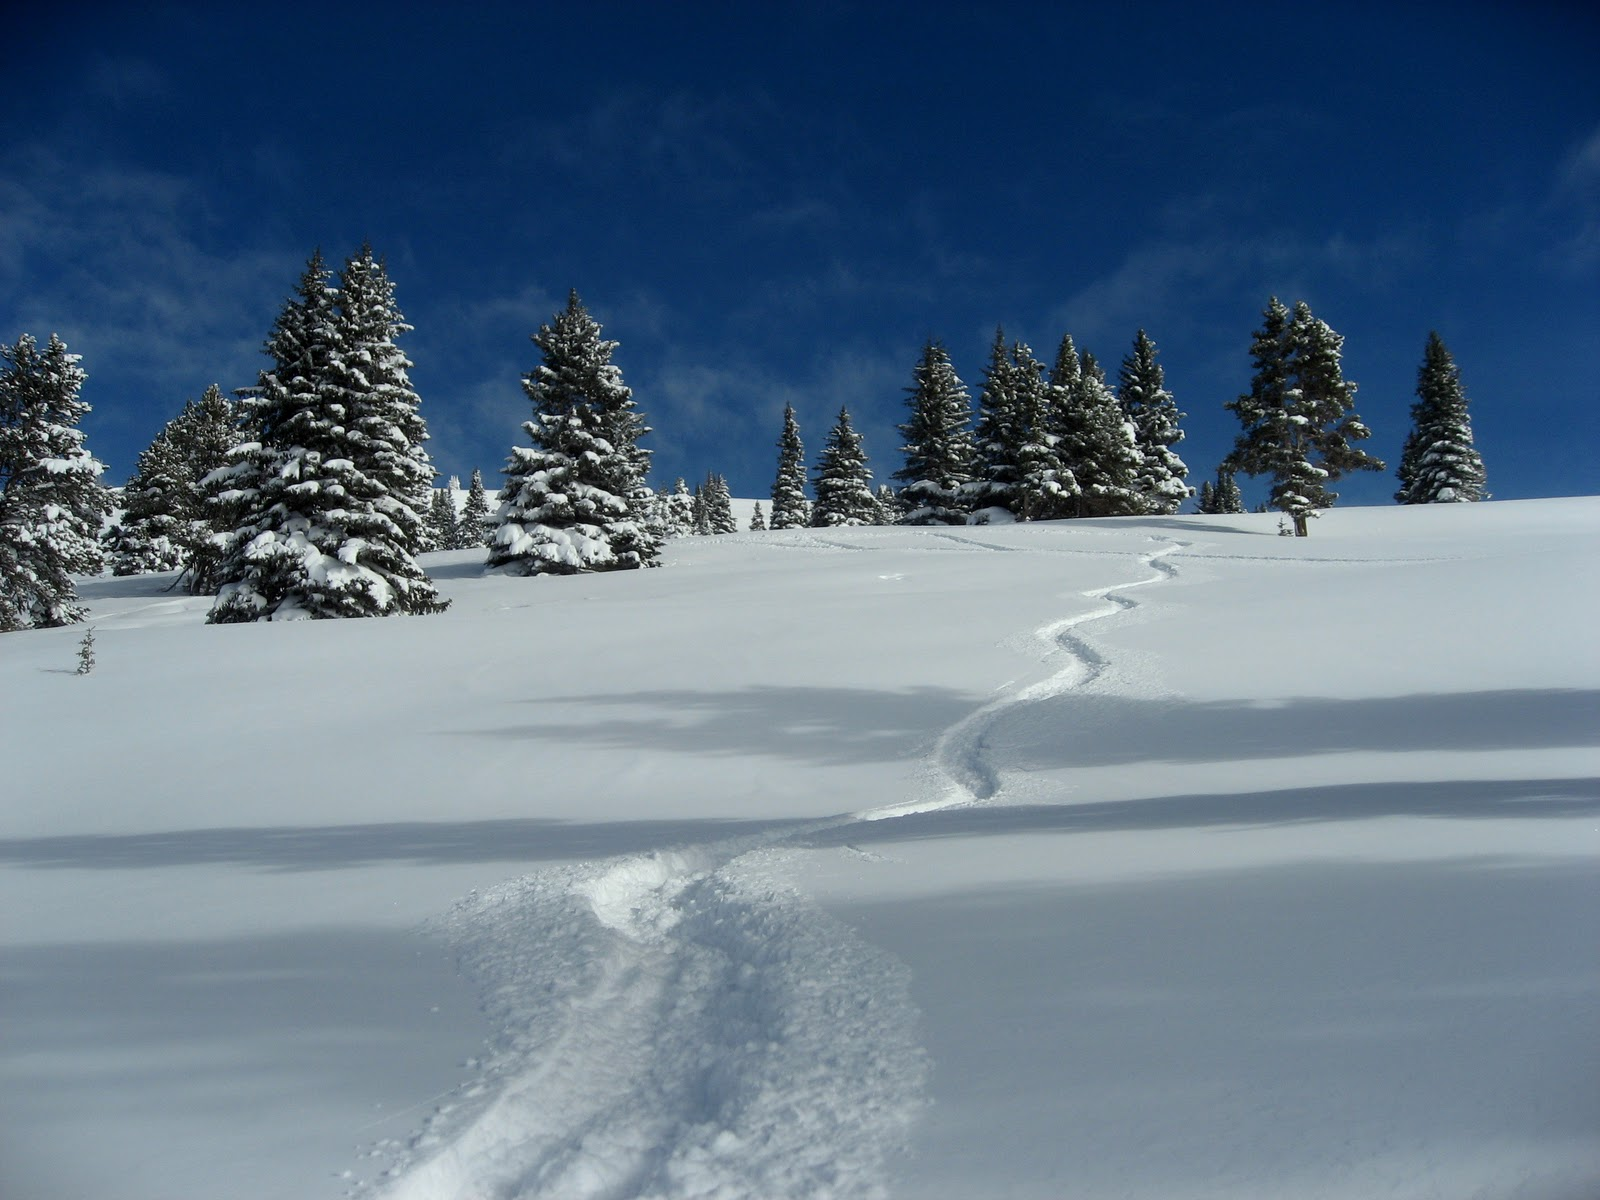 Vail Fresh Tracks in Powder, Mongolia Bowl